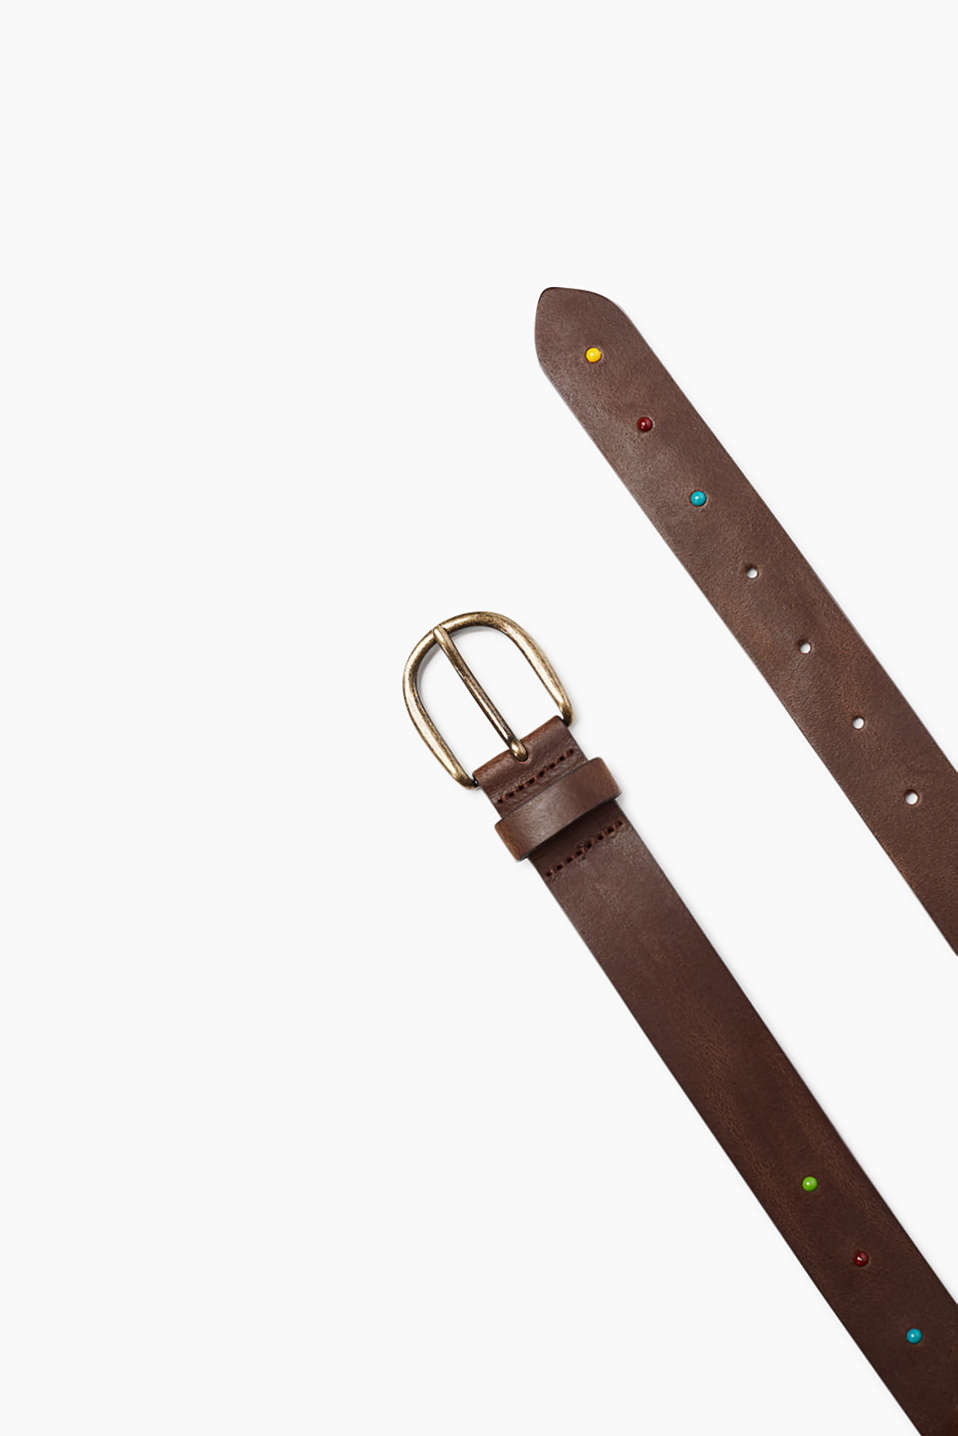 Belt with metal buckle made of cowhide leather